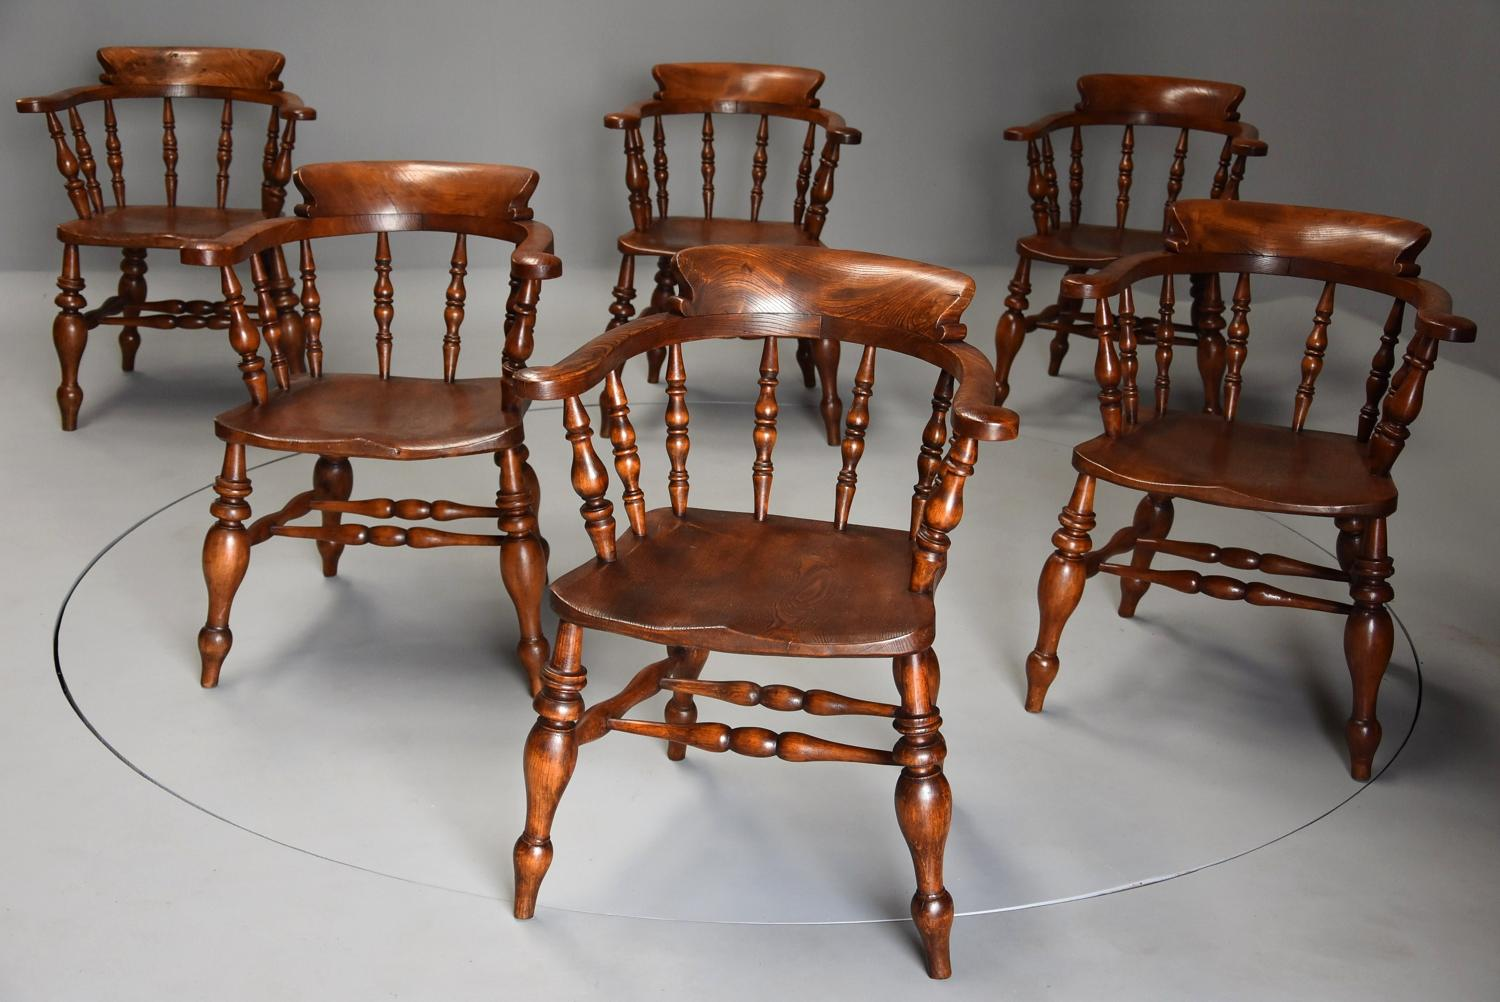 Superb set of six 19thc nicely figured elm Smokers bow Windsor chairs